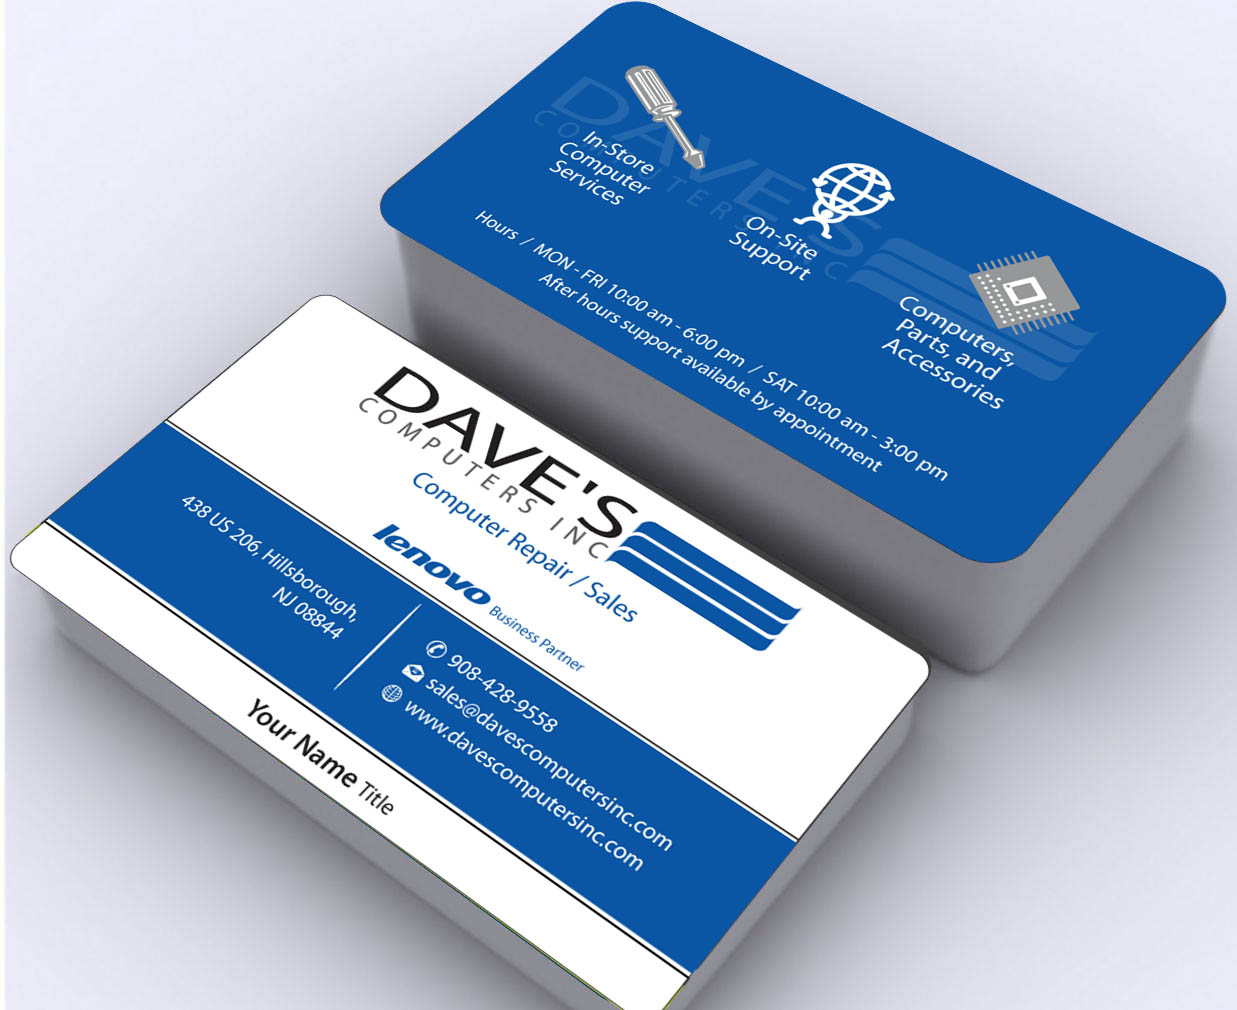 Business Card Design for David Molnar by Sbss | Design #4253852